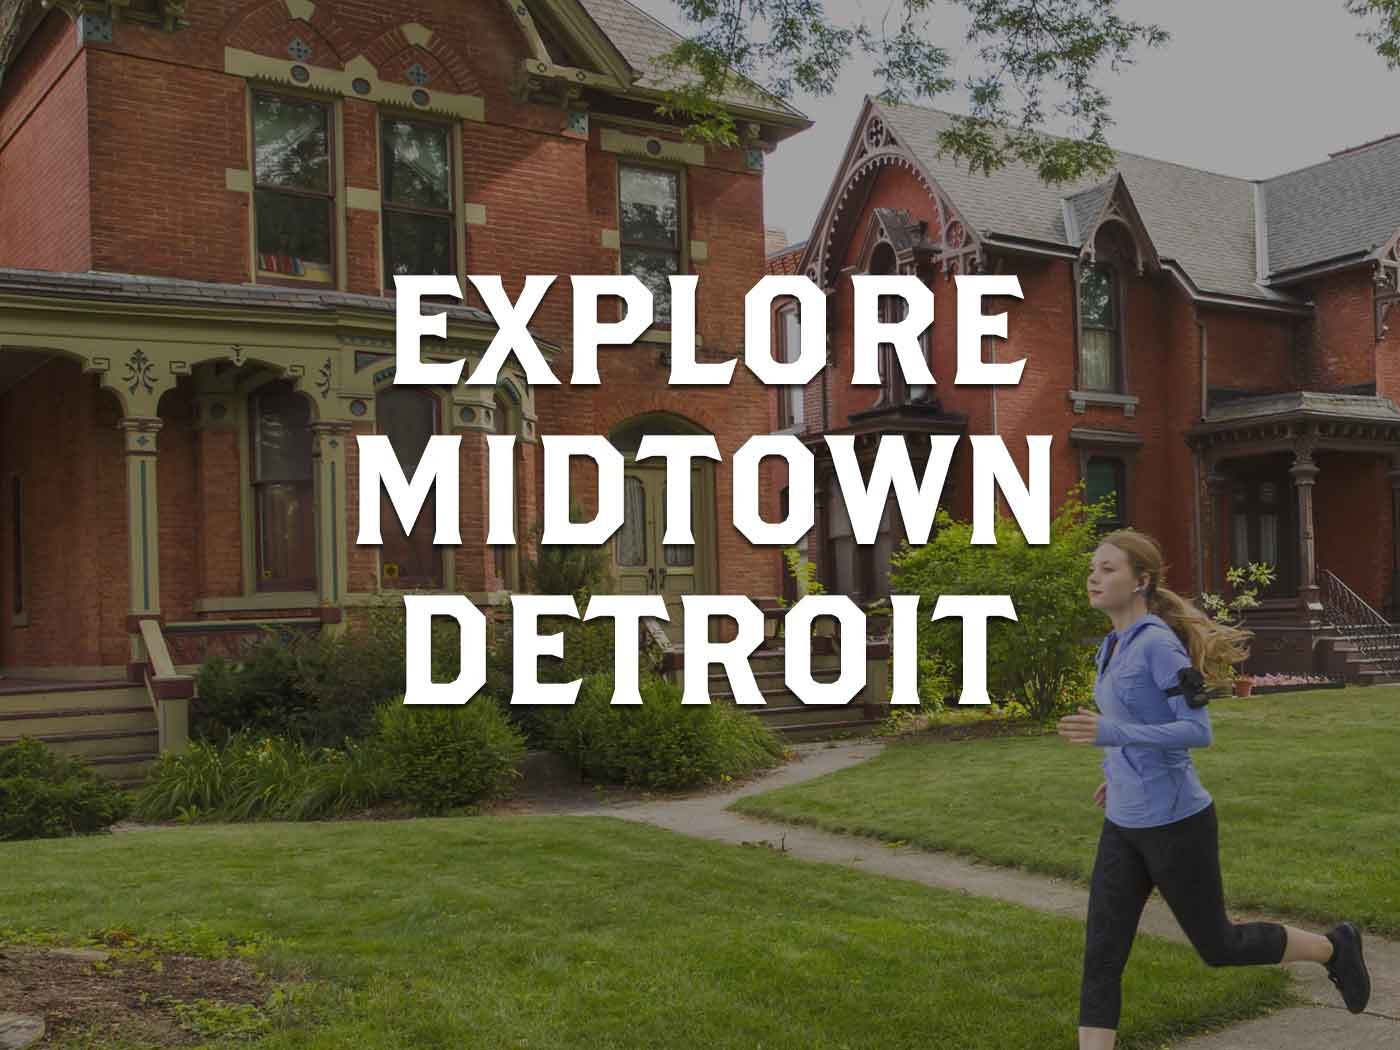 Explore Midtown Detroit